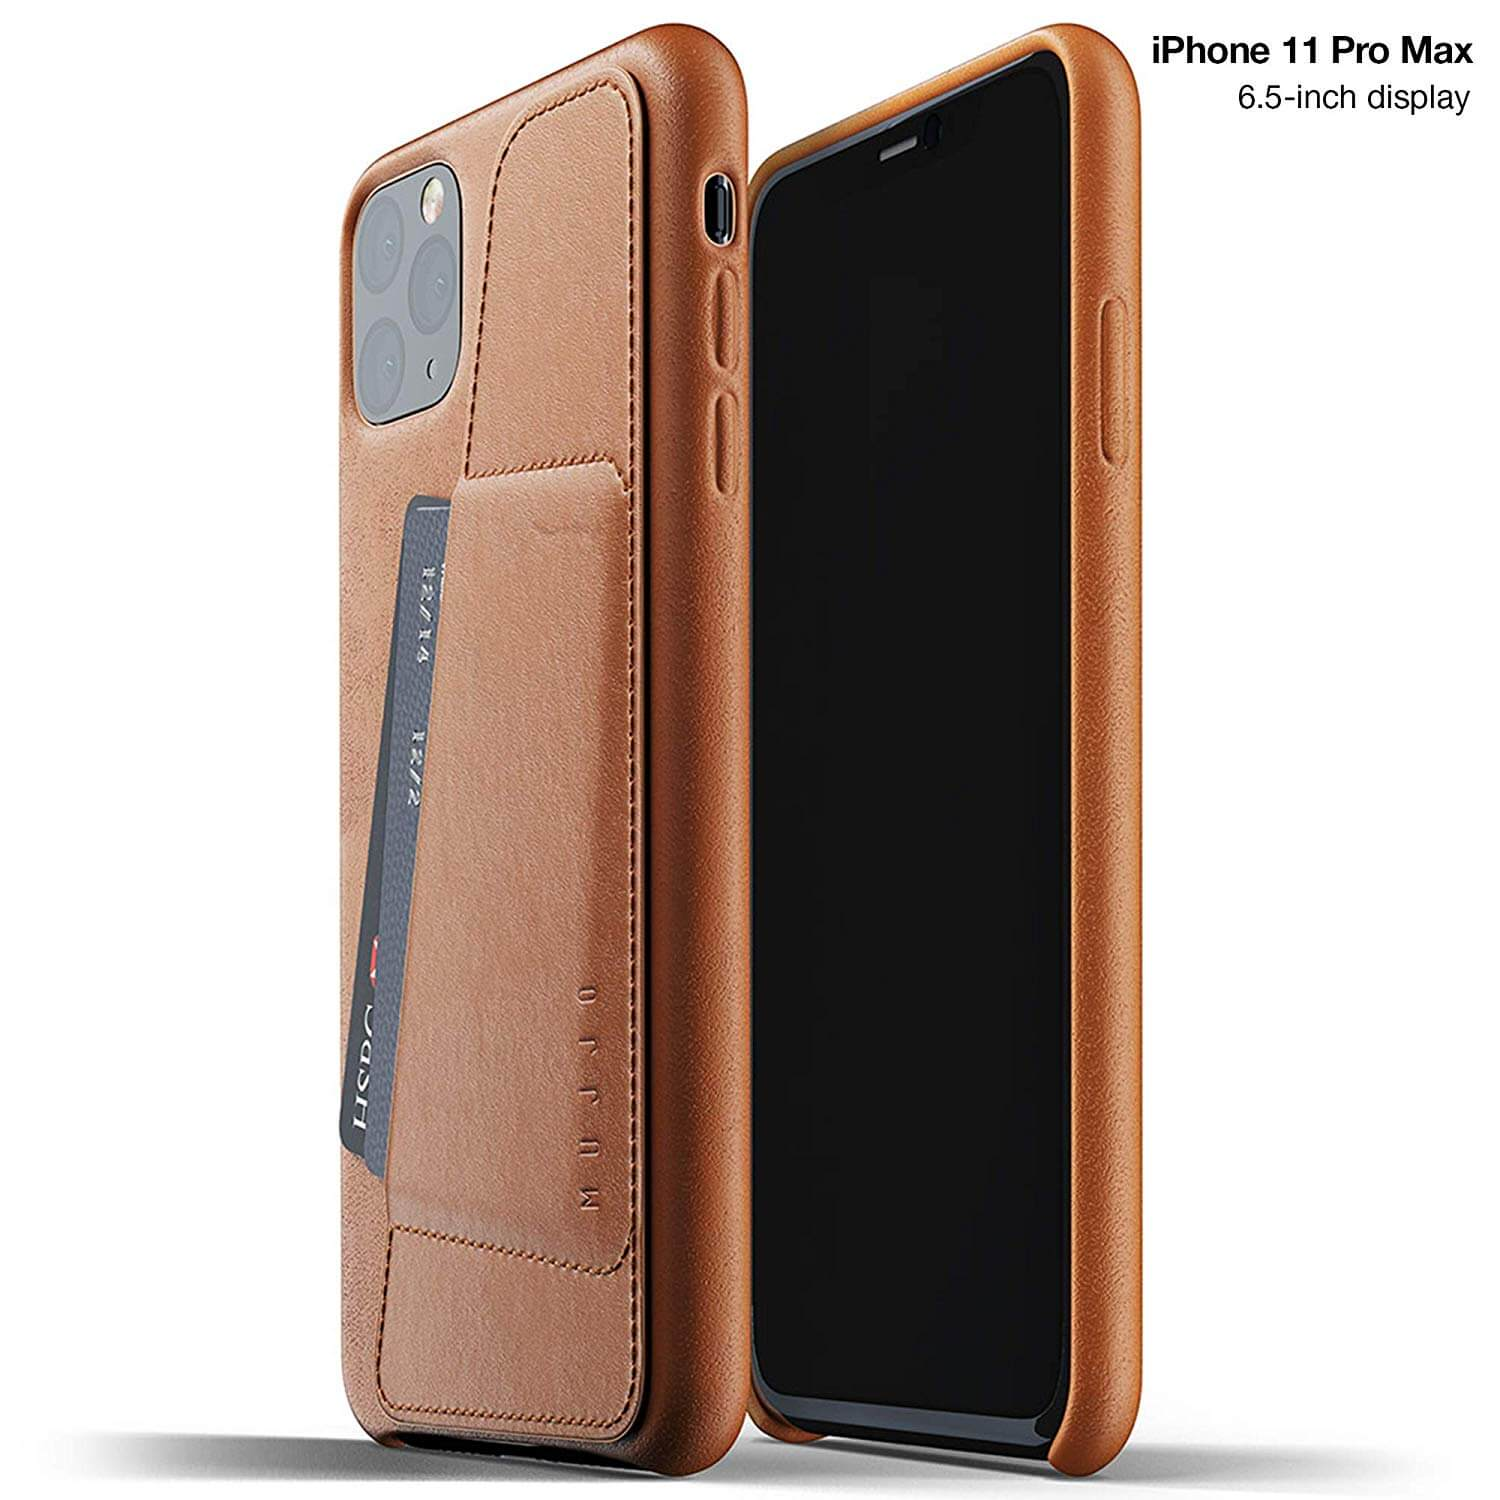 Mujjo Leather Wallet Case for iPhone 11 Pro Max (tan)